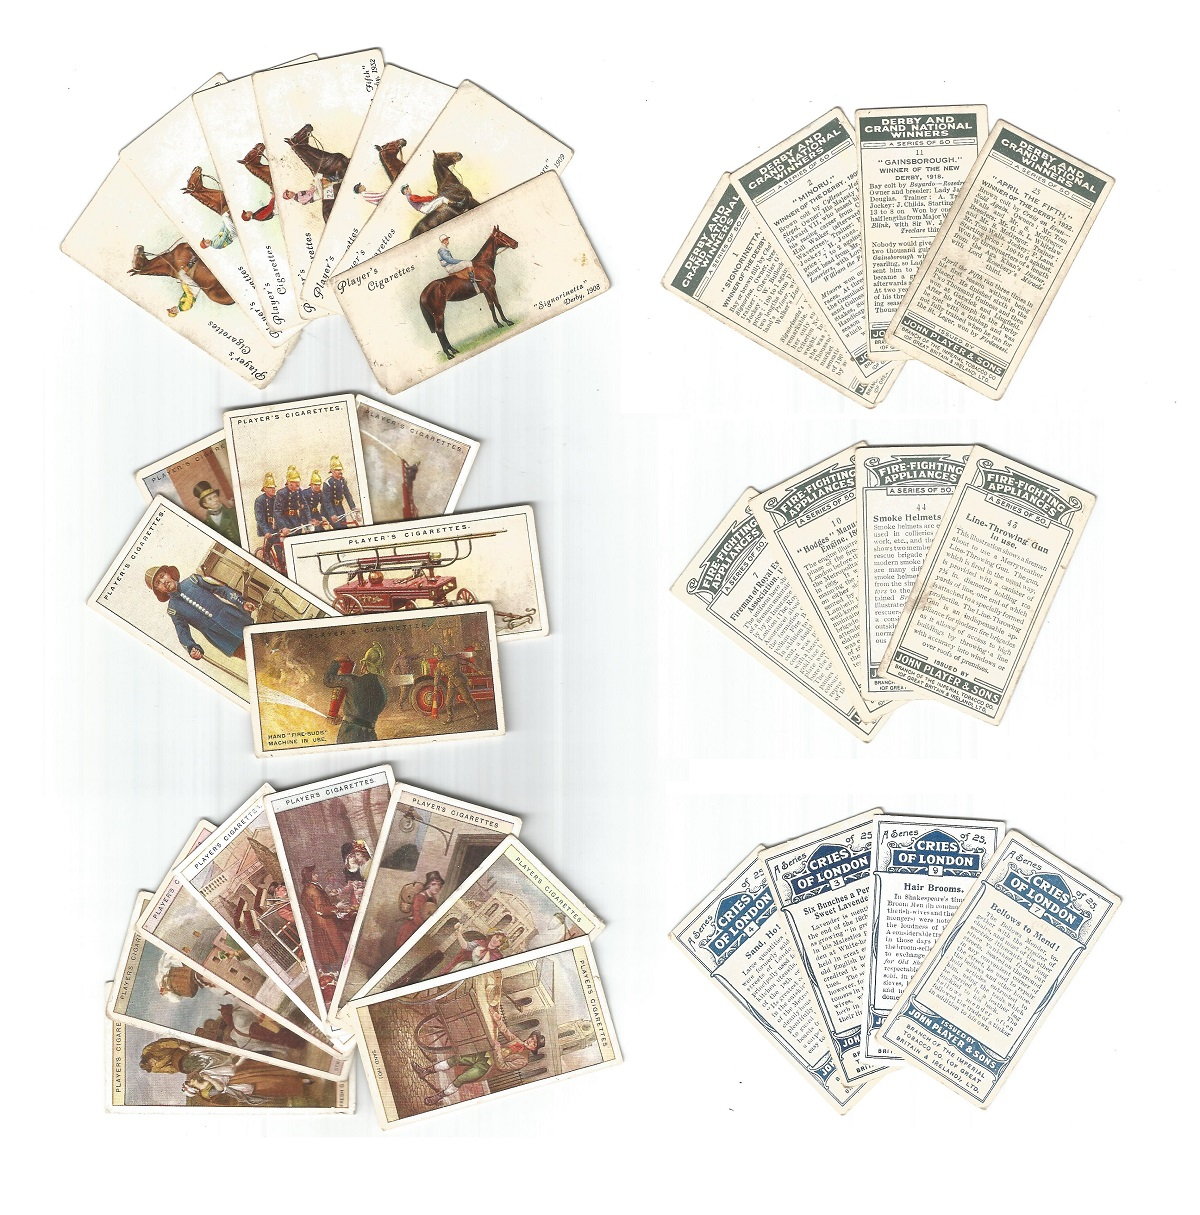 Cigarette card collection by John player and sons. Includes 1913 cries of London 8 cards, 1930